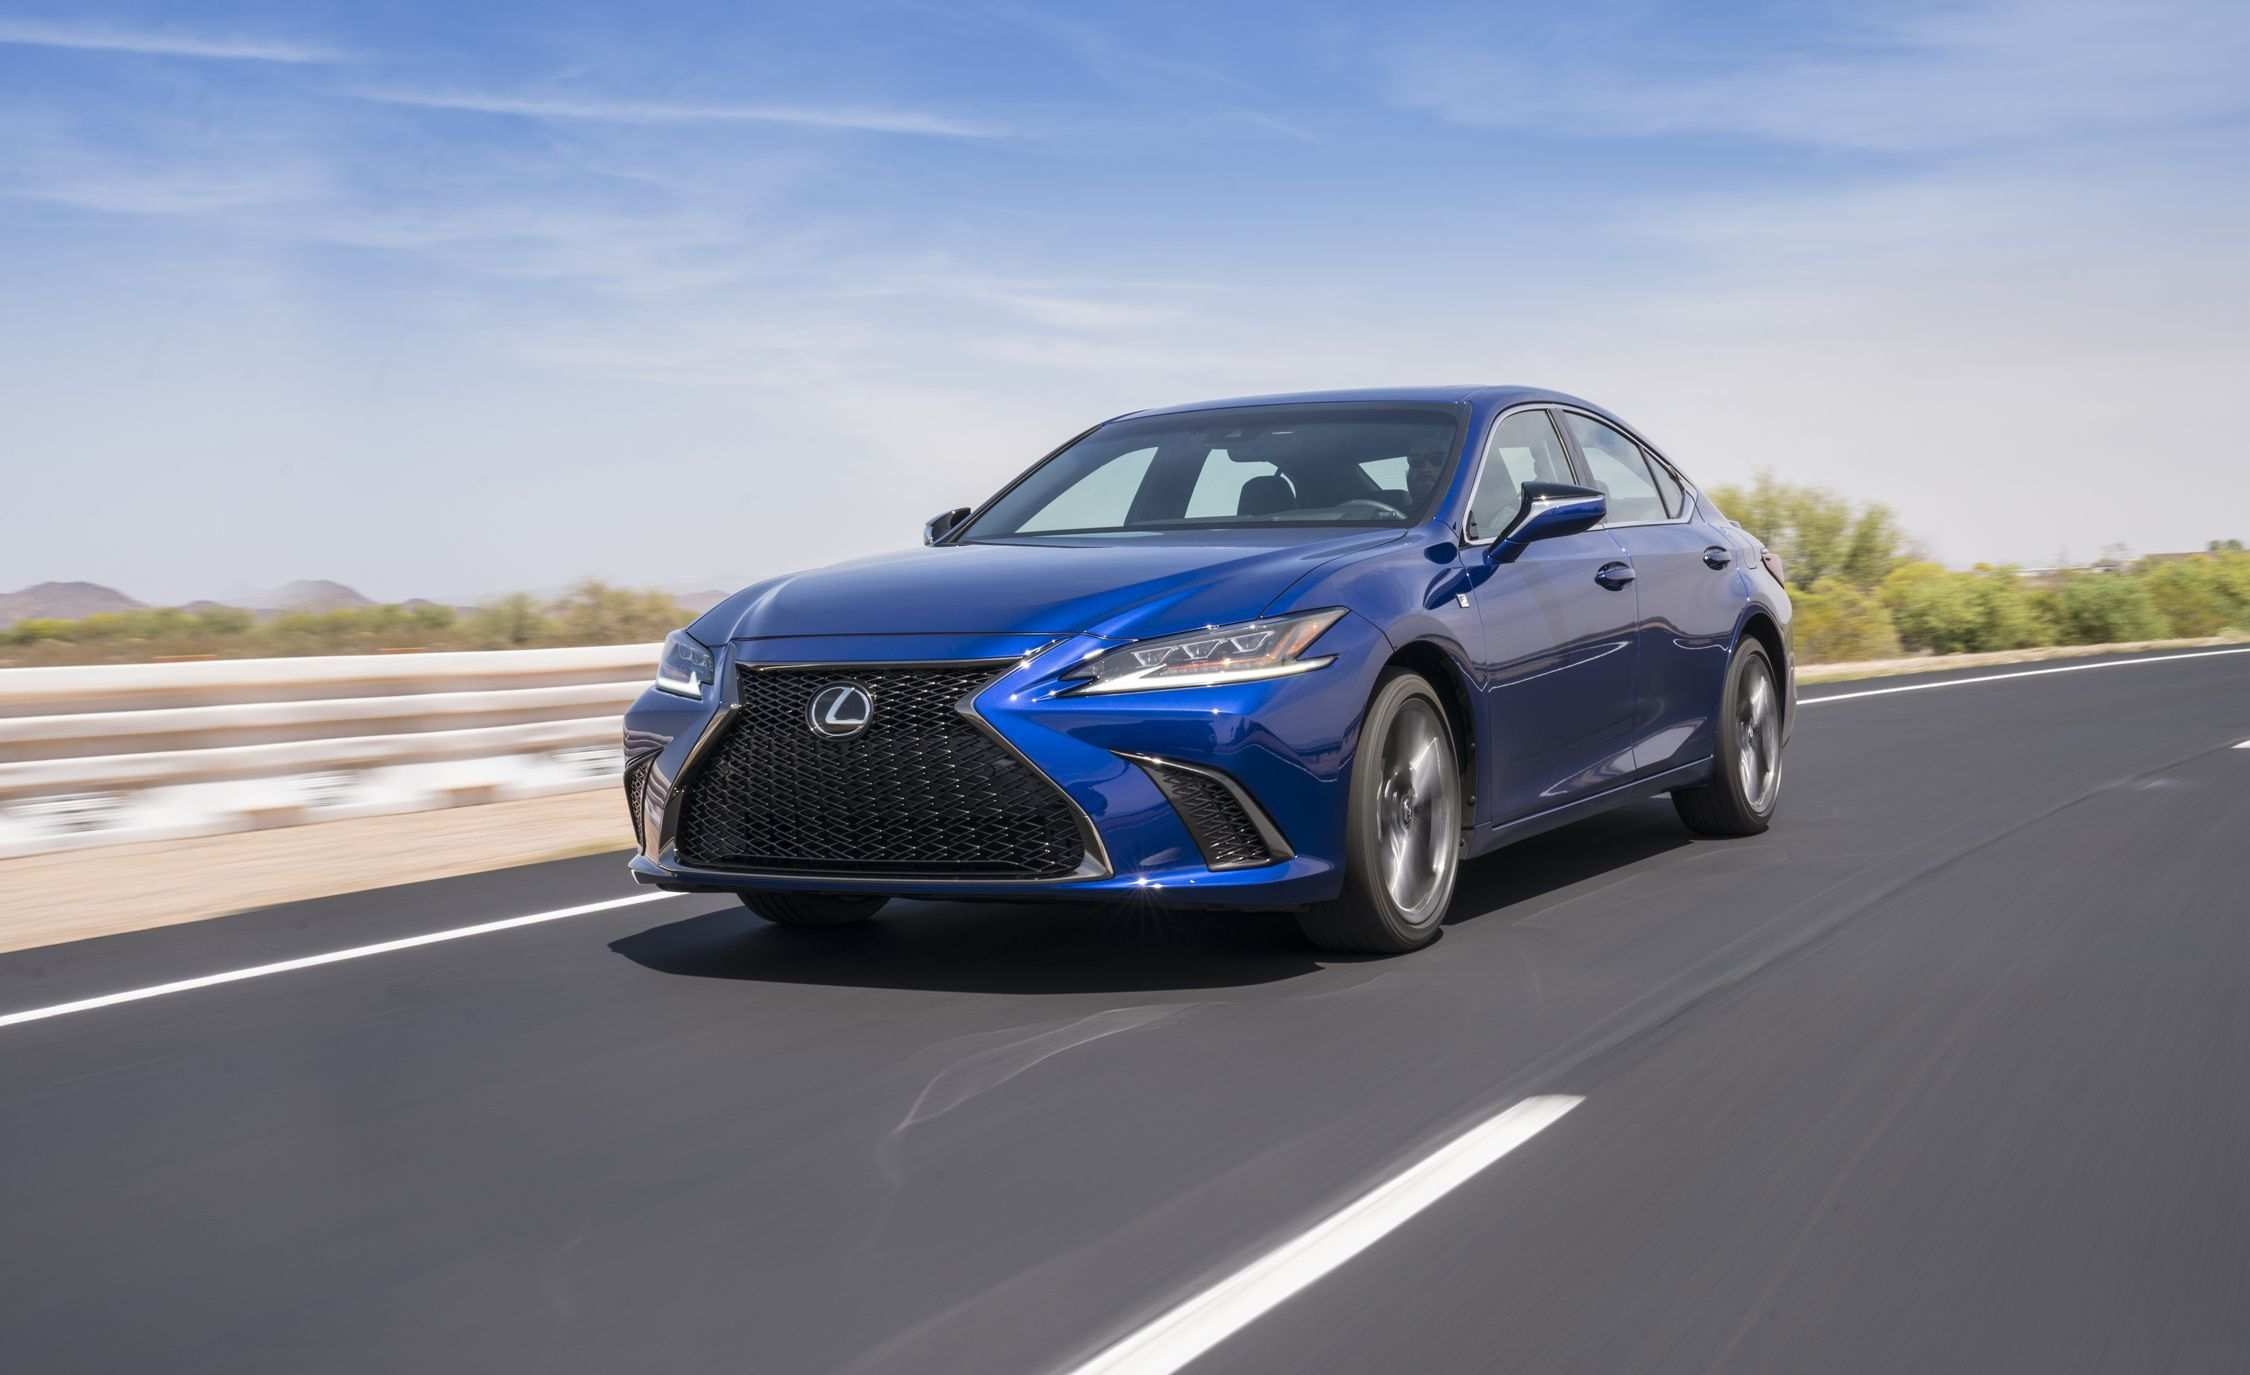 81 The Best Lexus Es 2020 Release Date Exterior